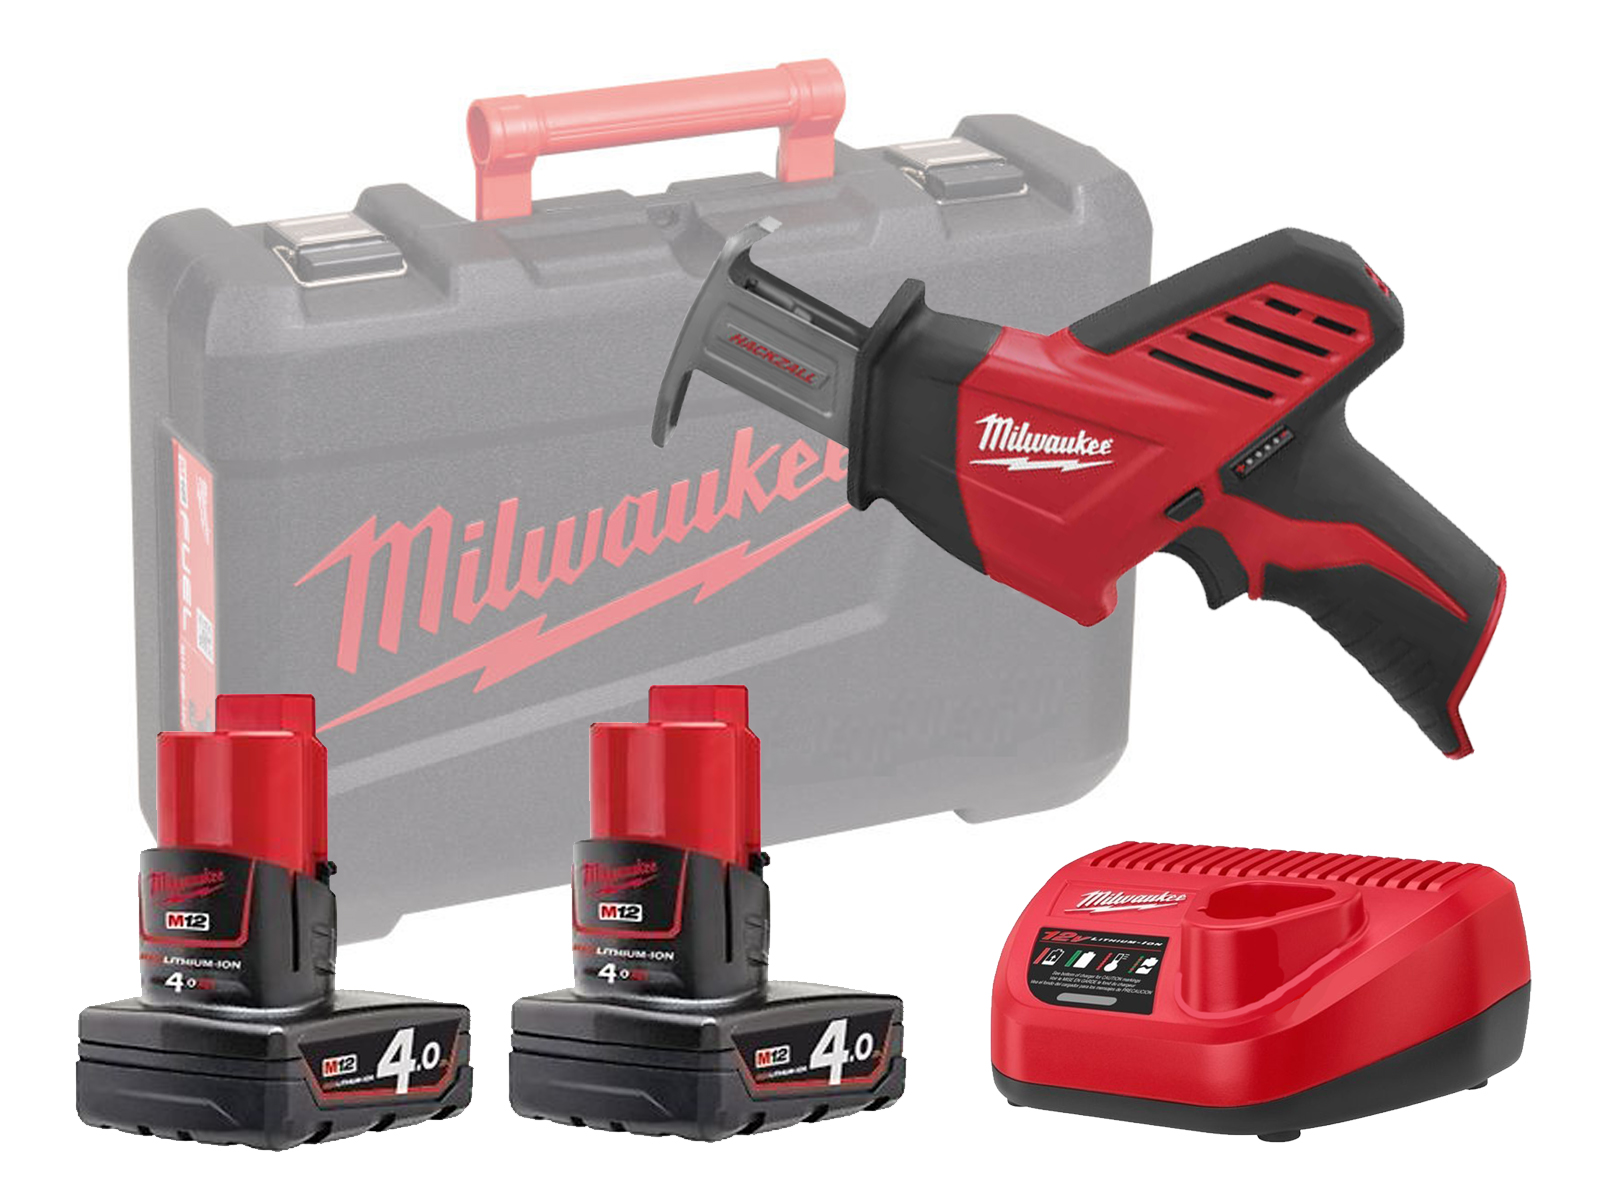 MILWAUKEE 12V COMPACT BRUSHED HACKZALL - C12HZ - 4.0AH PACK